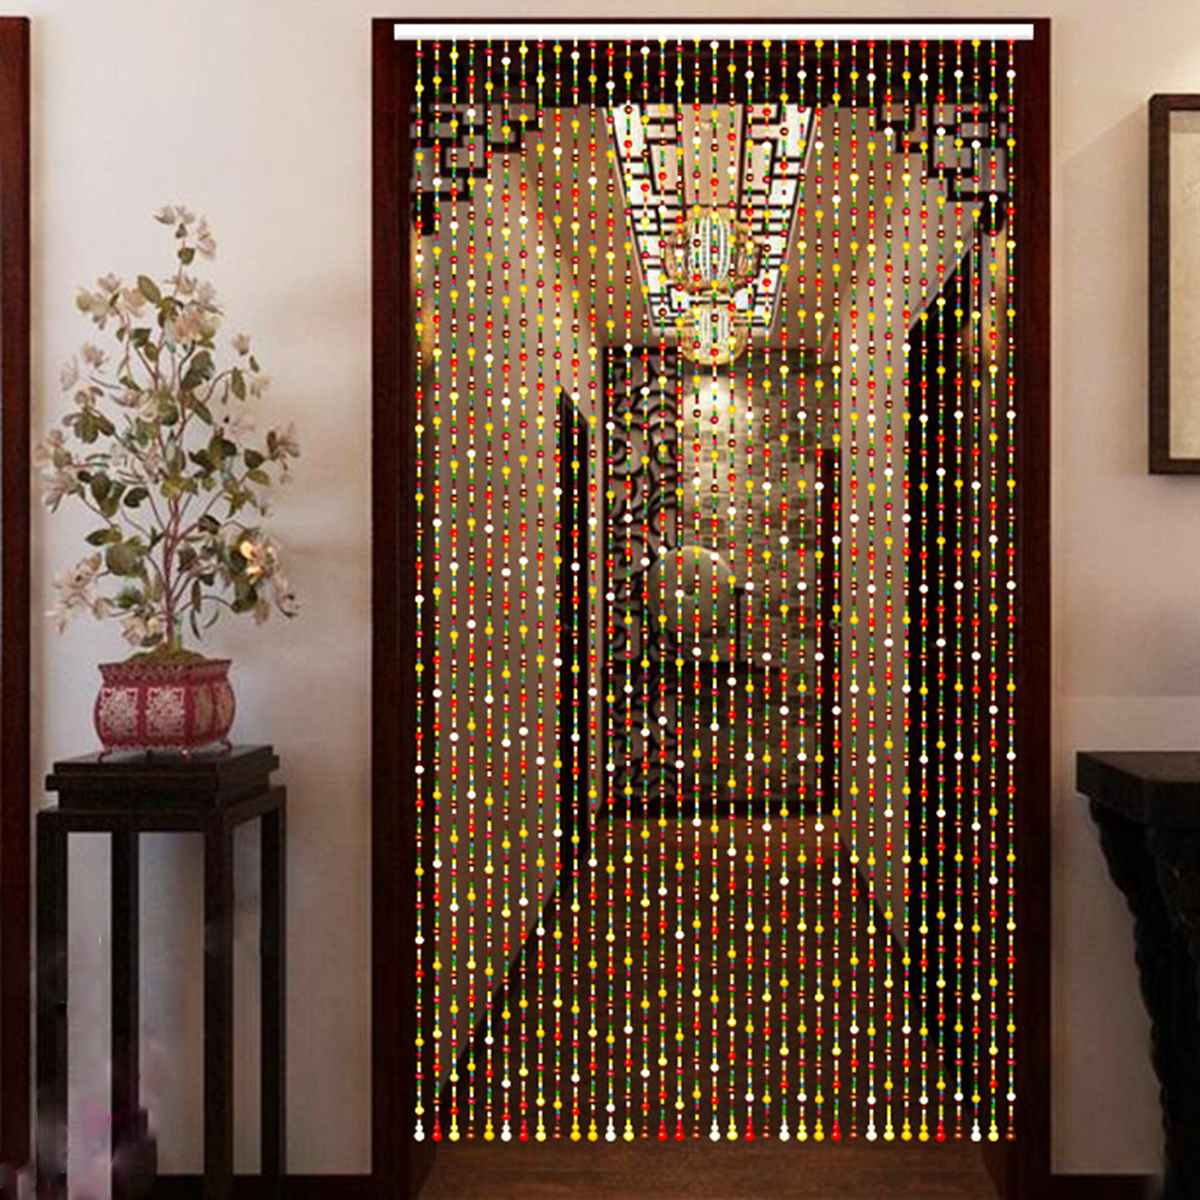 31 Line Wooden Beaded Curtain Tassel Curtains Door Beads Curtains String Curtain Wooden Beaded Door Curtain Screen Long Crystal Porch Partition Curtain Bedroom Living Room Outdoor Curtains